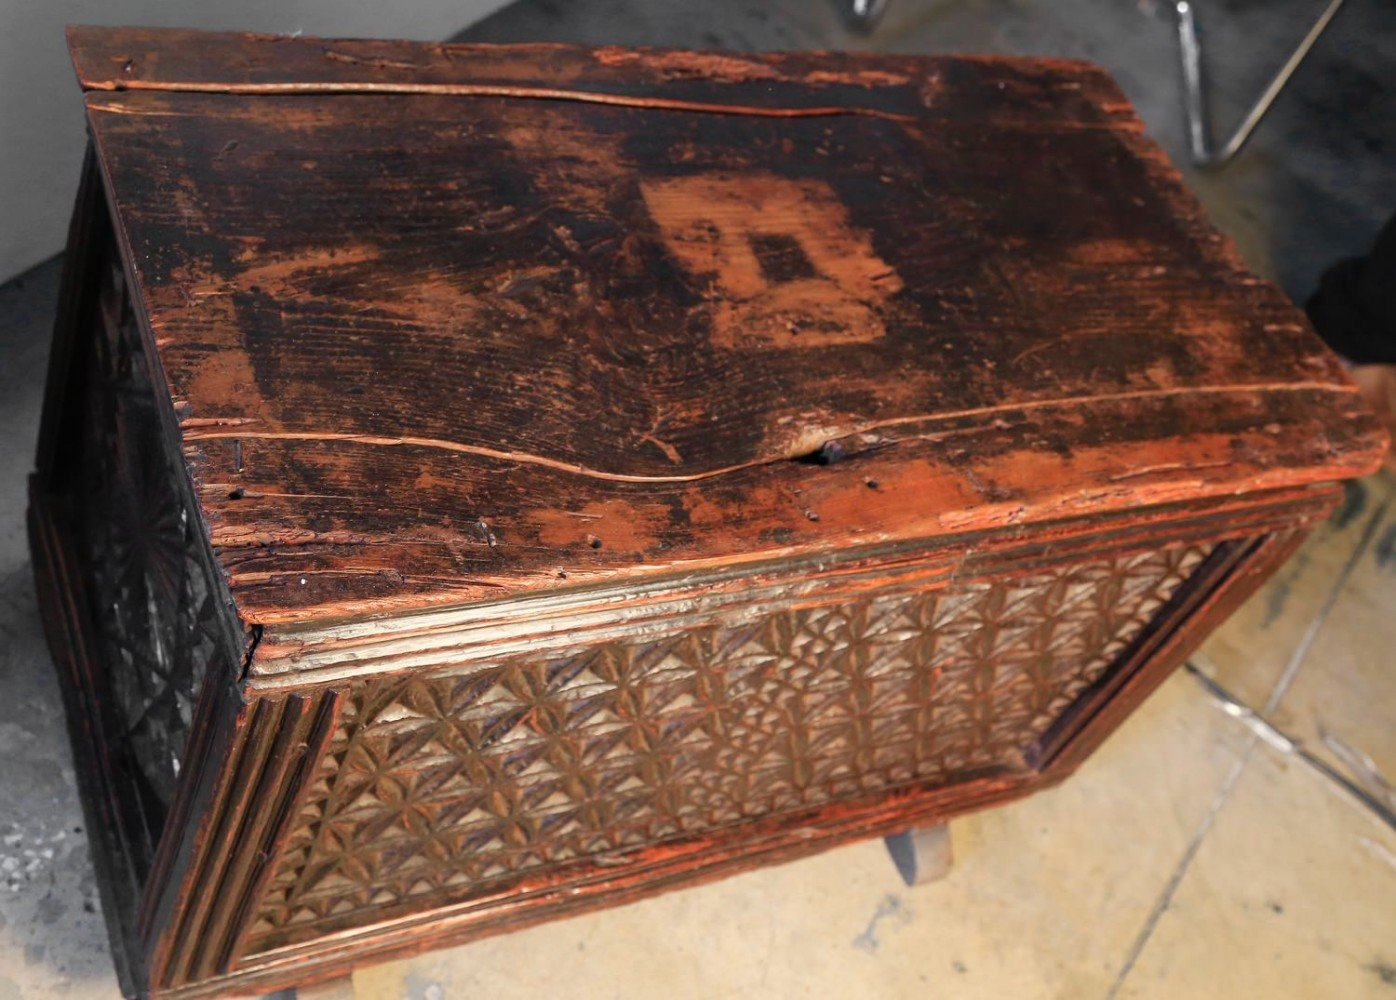 Carved Walnut Coffer, c. 16thc.